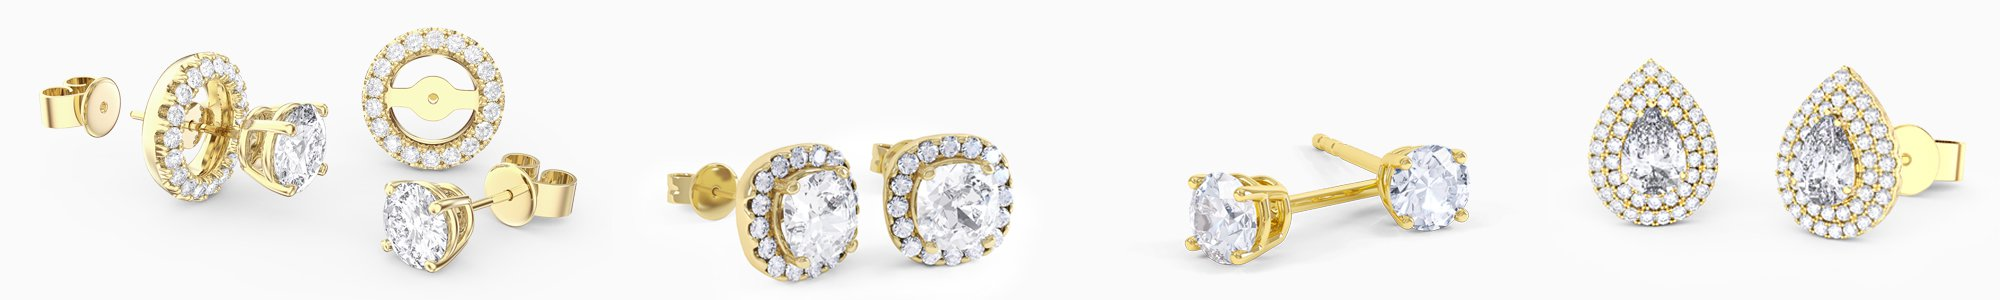 Shop 18ct Gold Earrings by Jian London. Buy direct and save from our wide selection of 18ct Gold Earrings at the Jian London jewellery Store. Free UK Delivery